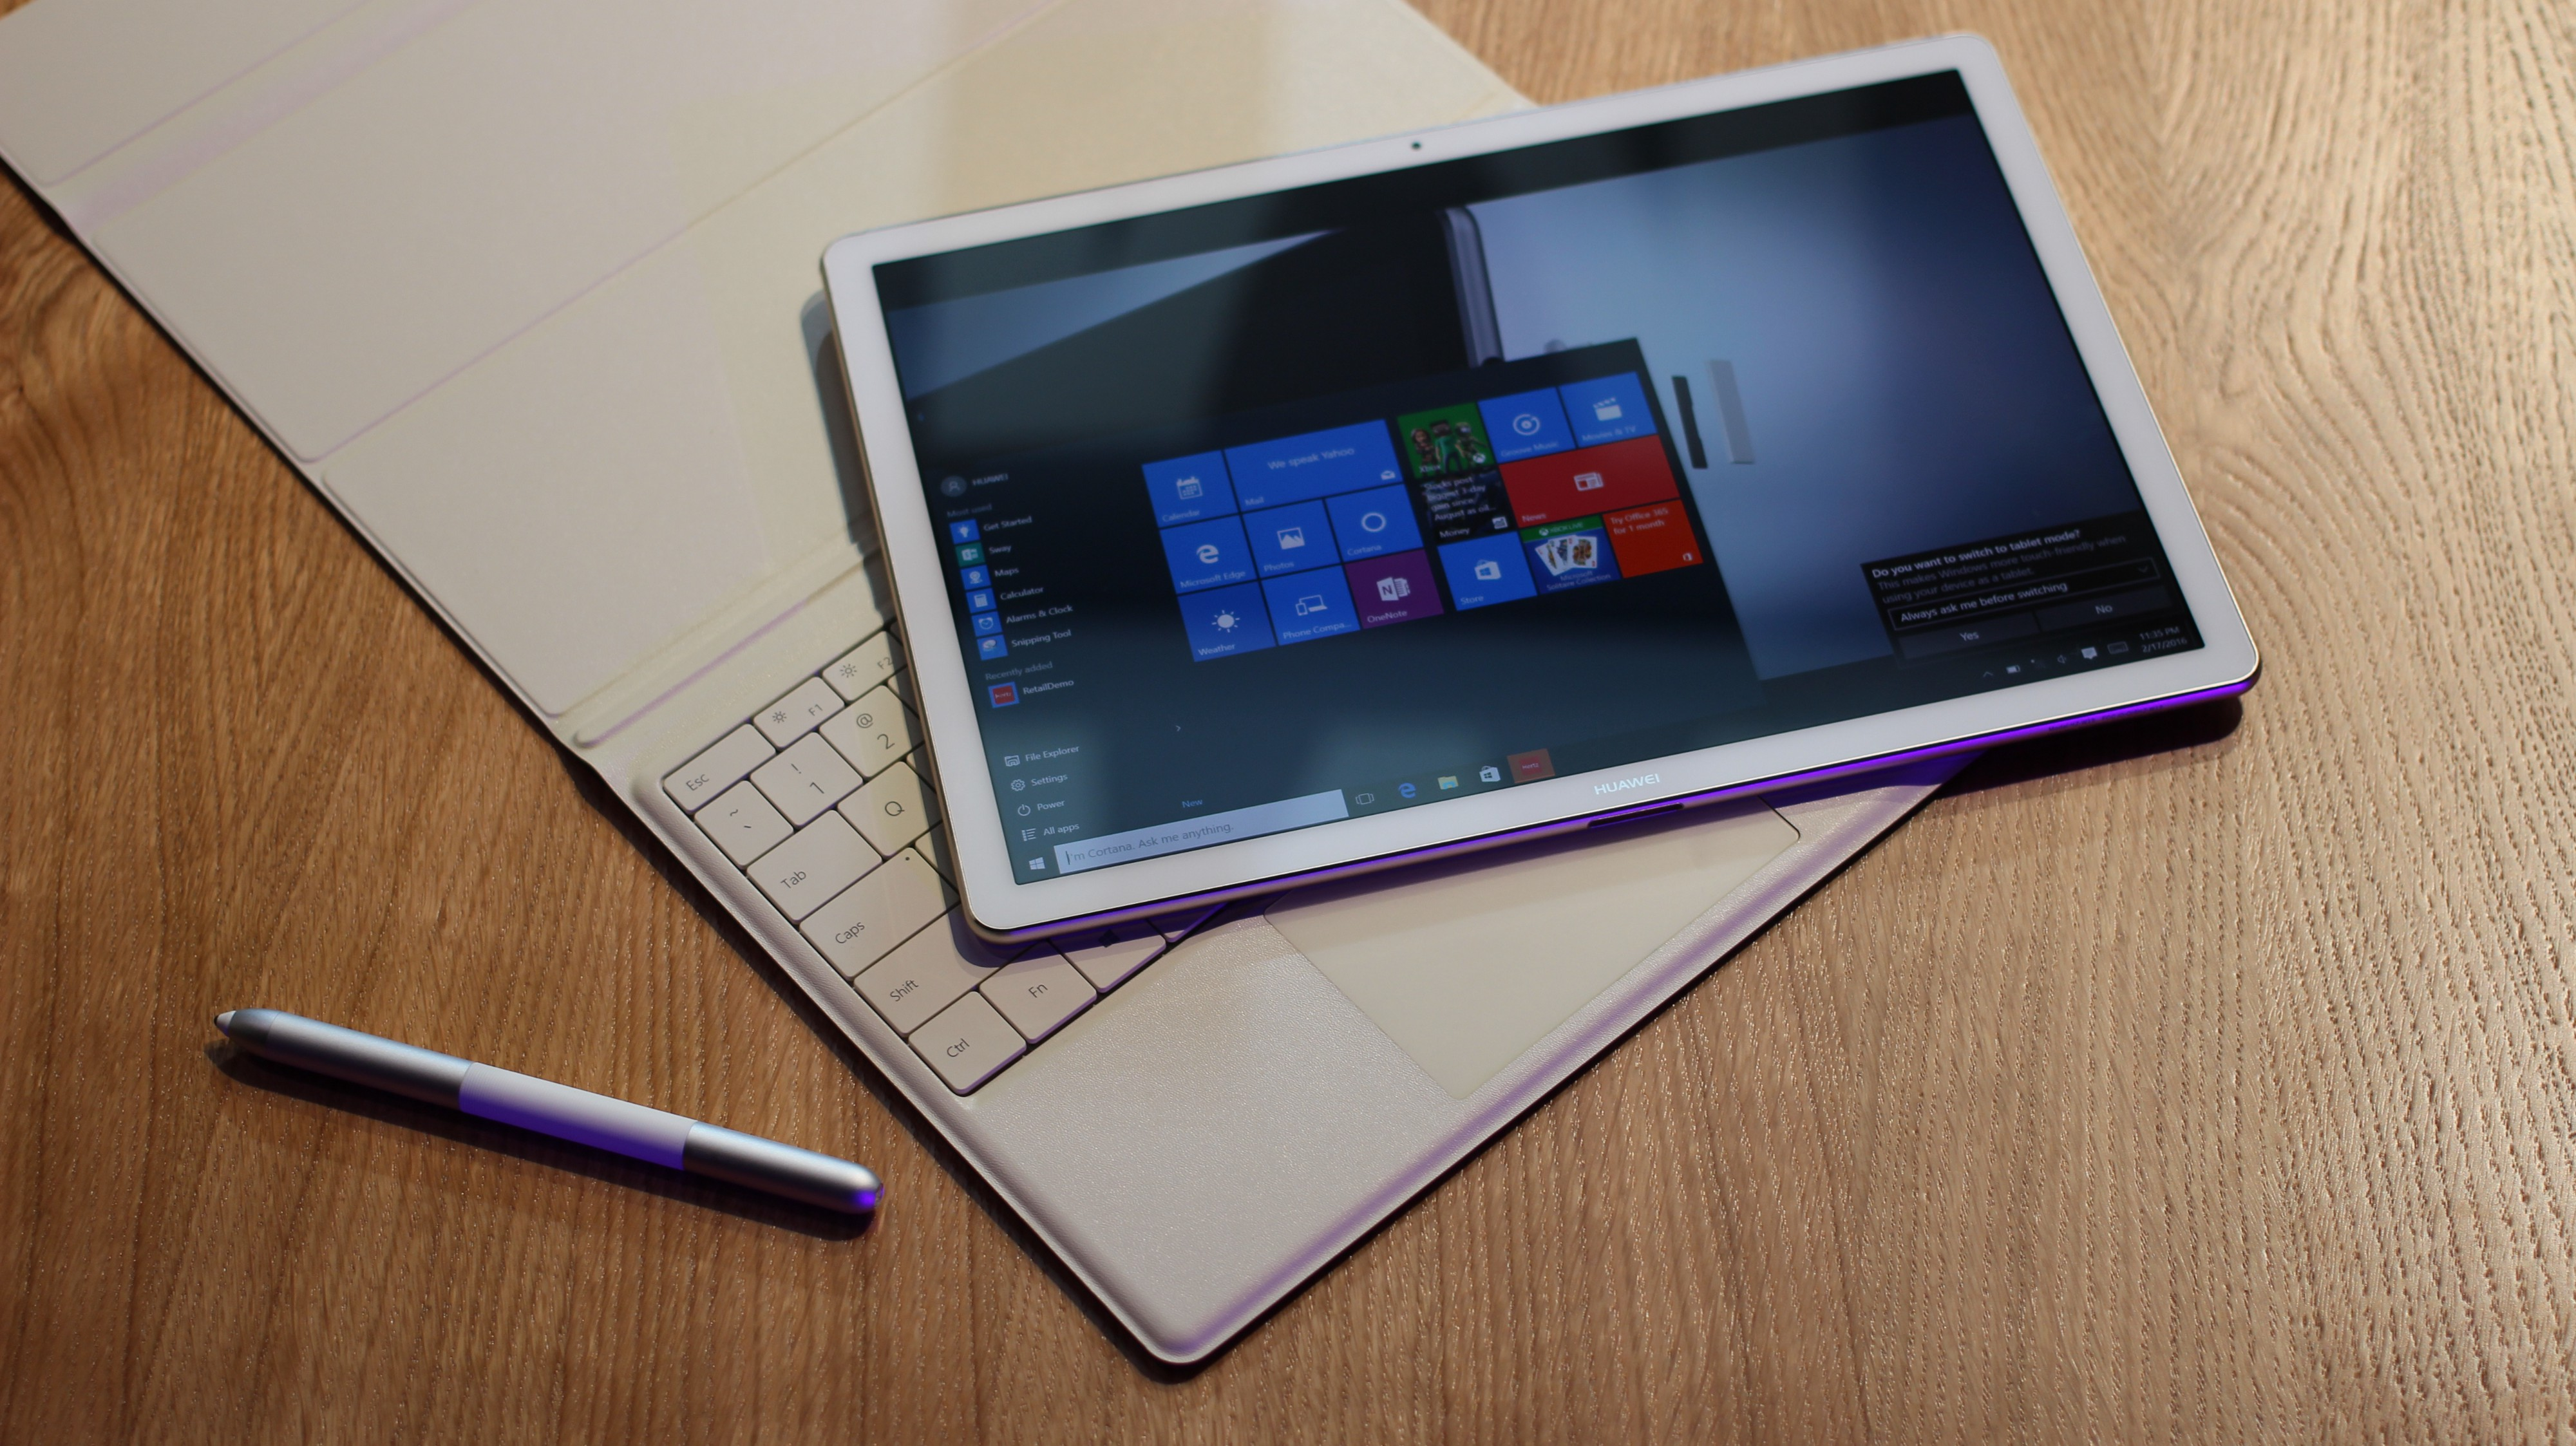 Top 7 Productivity Apps on Windows 10 - Paper Planes